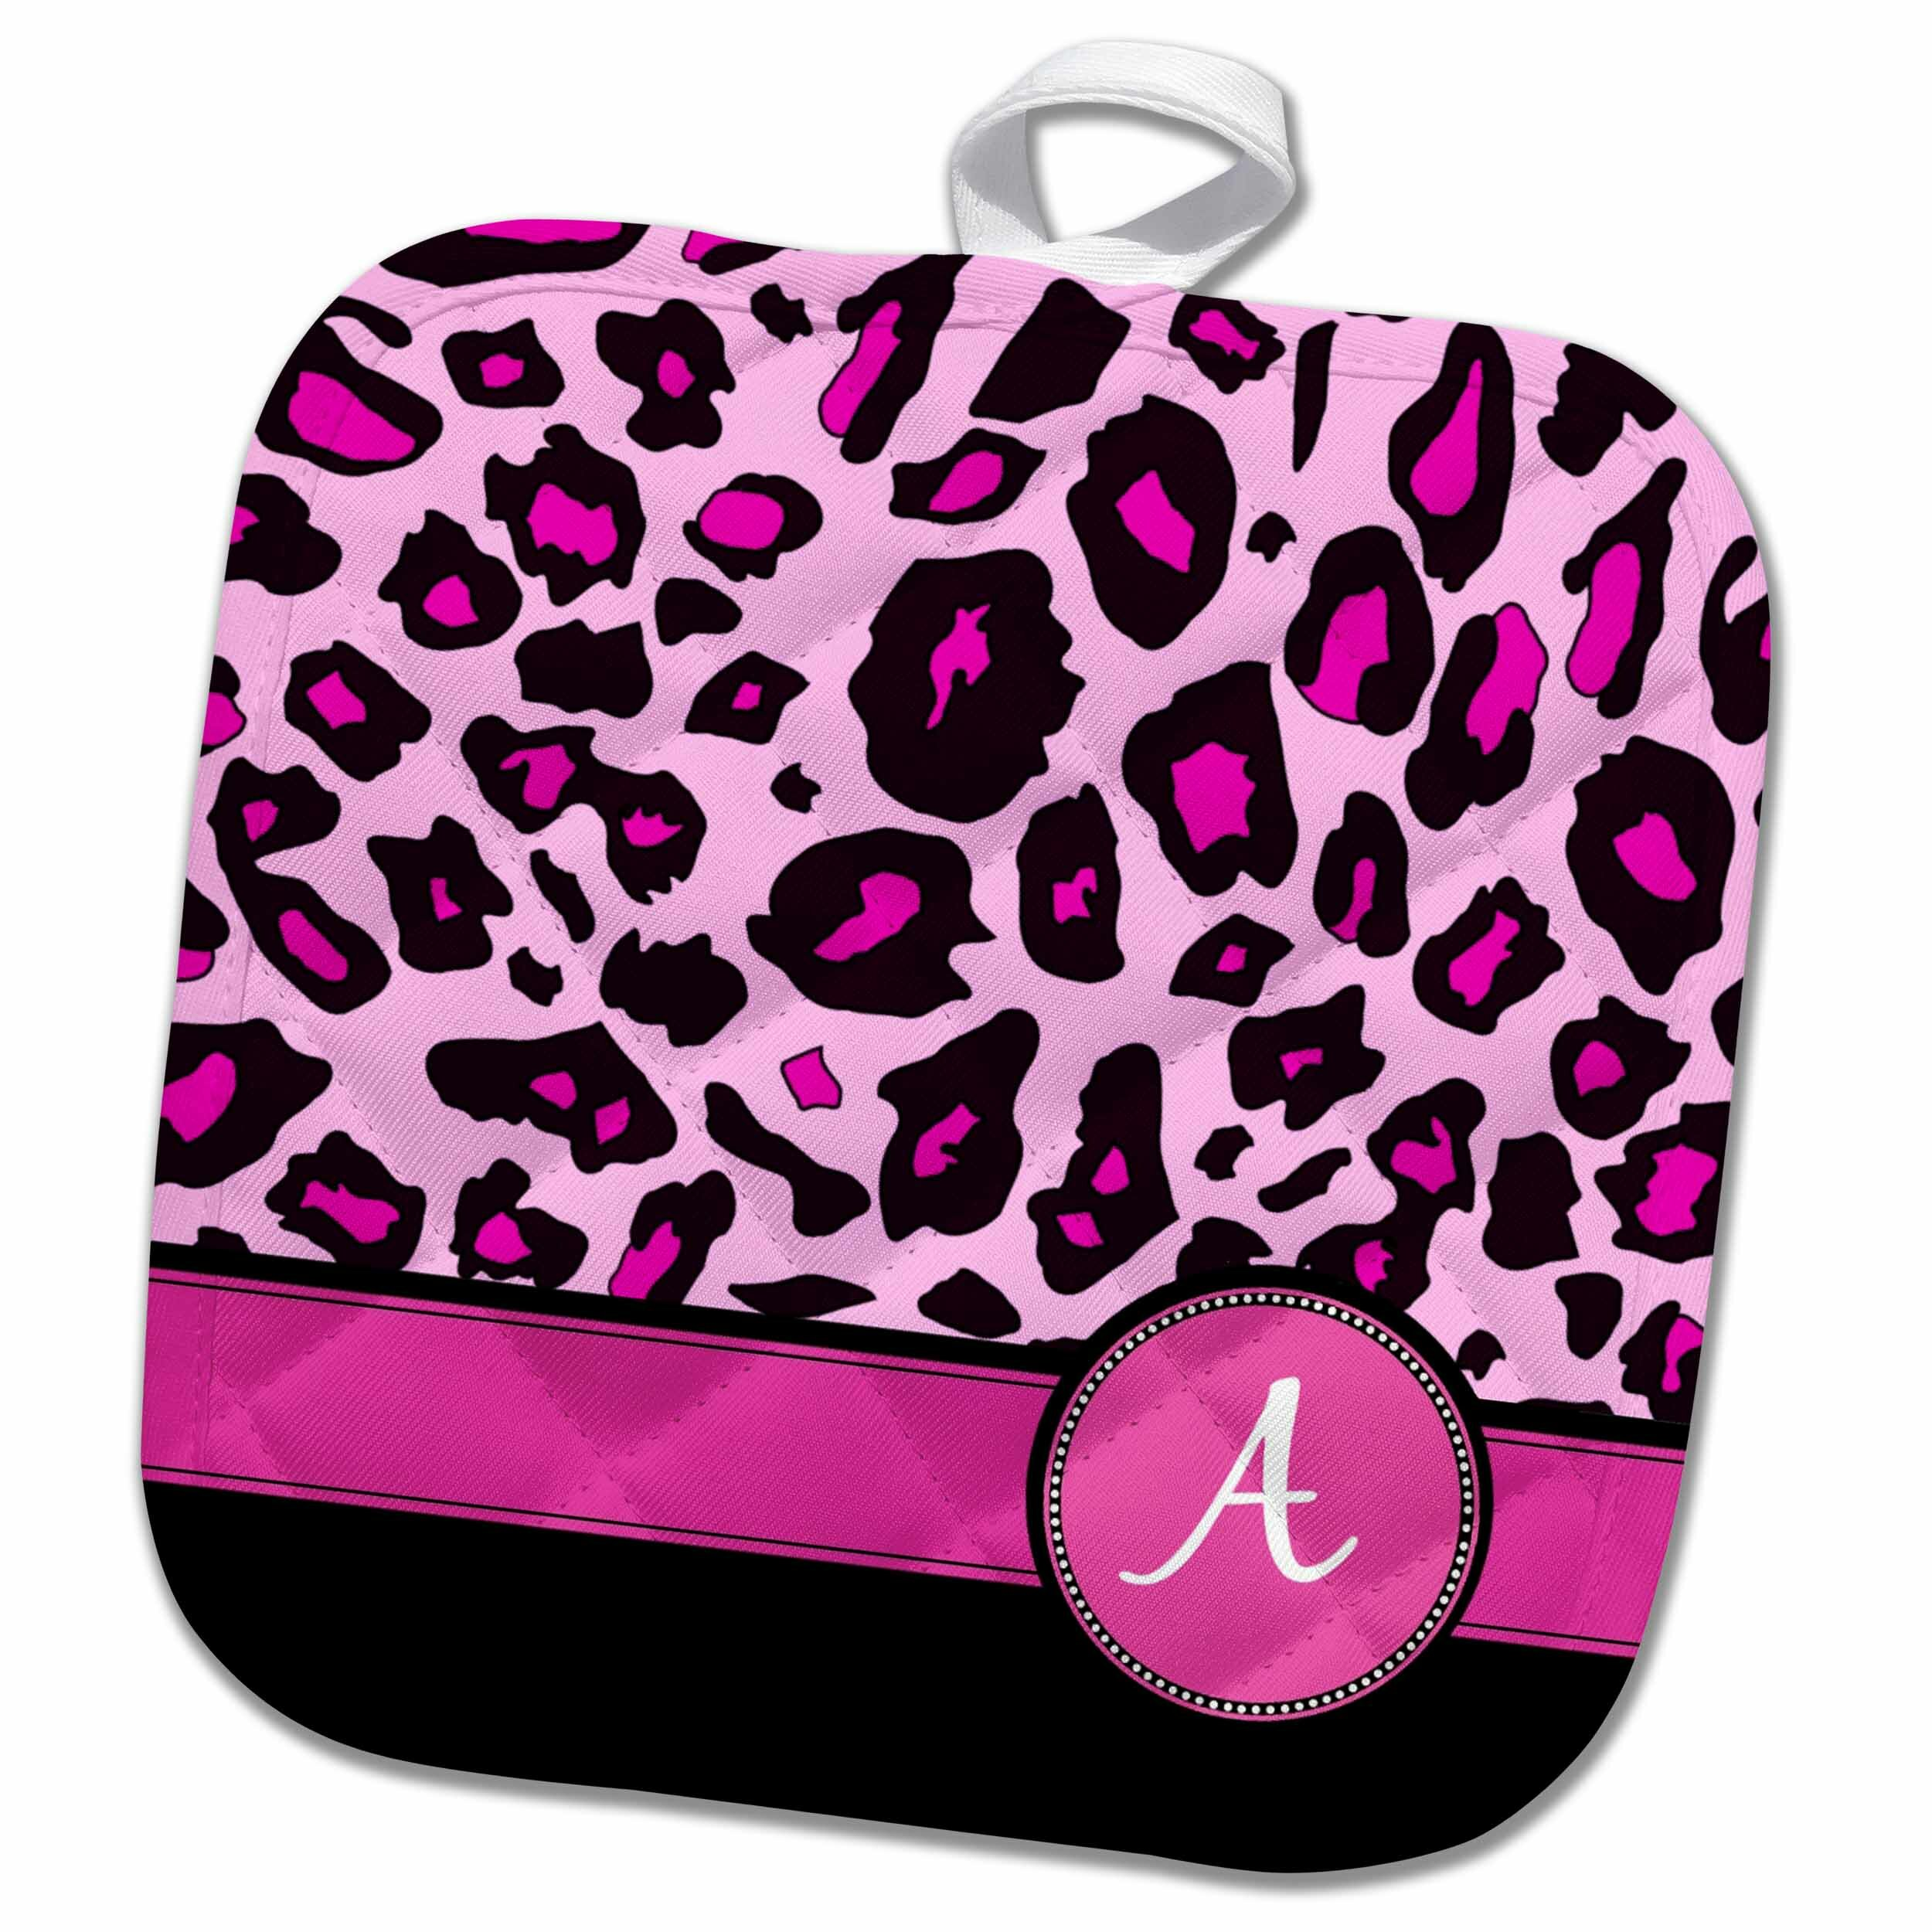 3drose Personalized Initial A Monogrammed Hot And Leopard